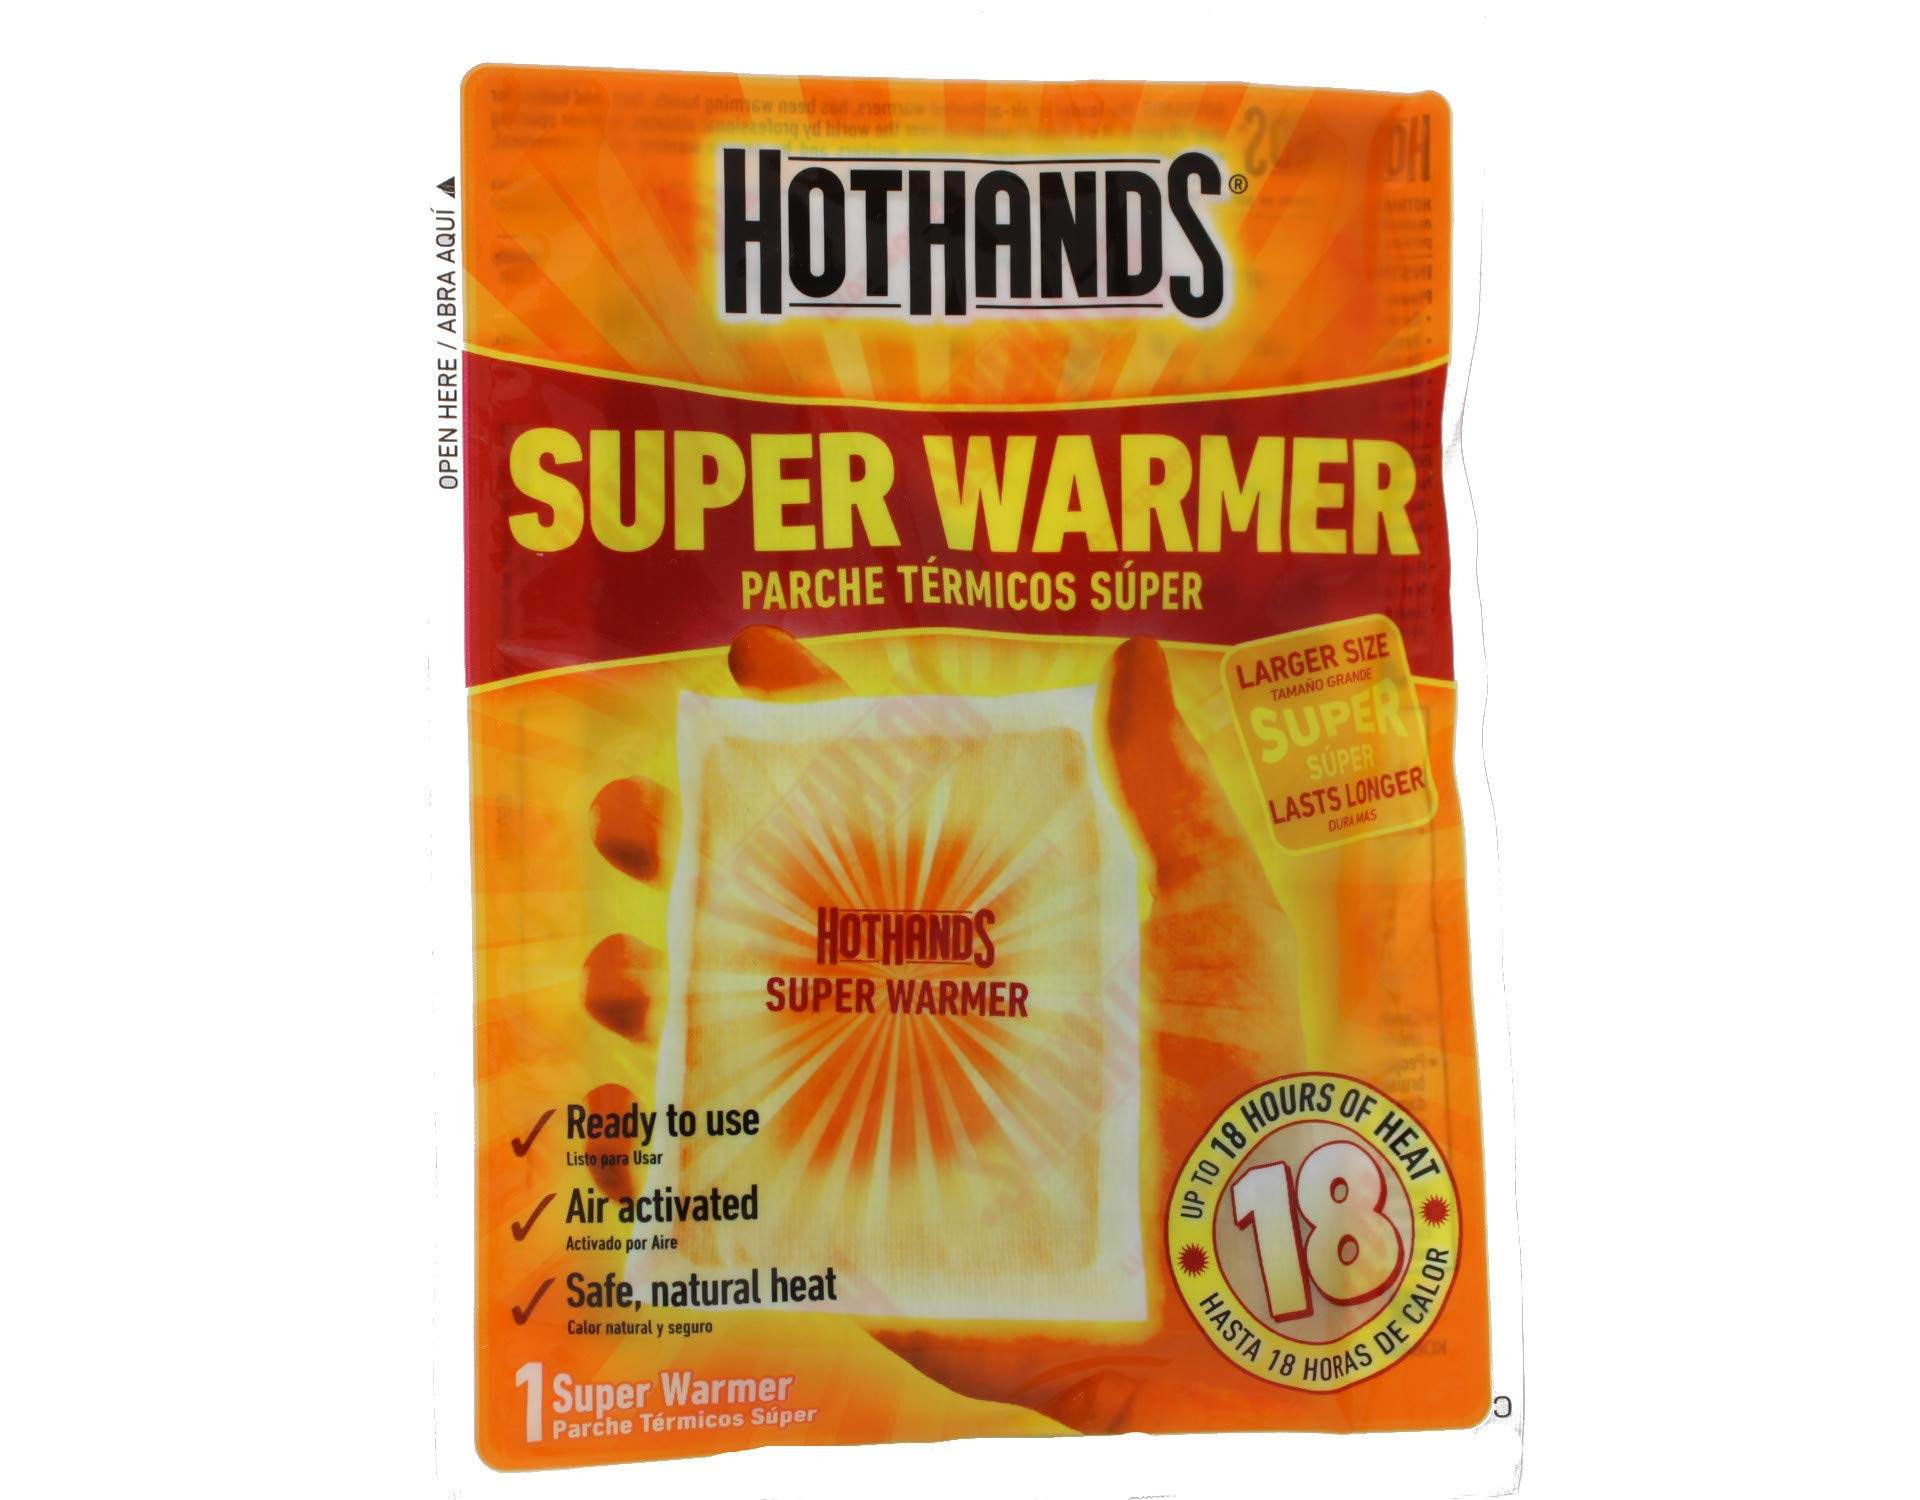 HotHands Body & Hand Super Warmer New Mega Size Pack by Heat Max Heatmax Hot Hands HotHands